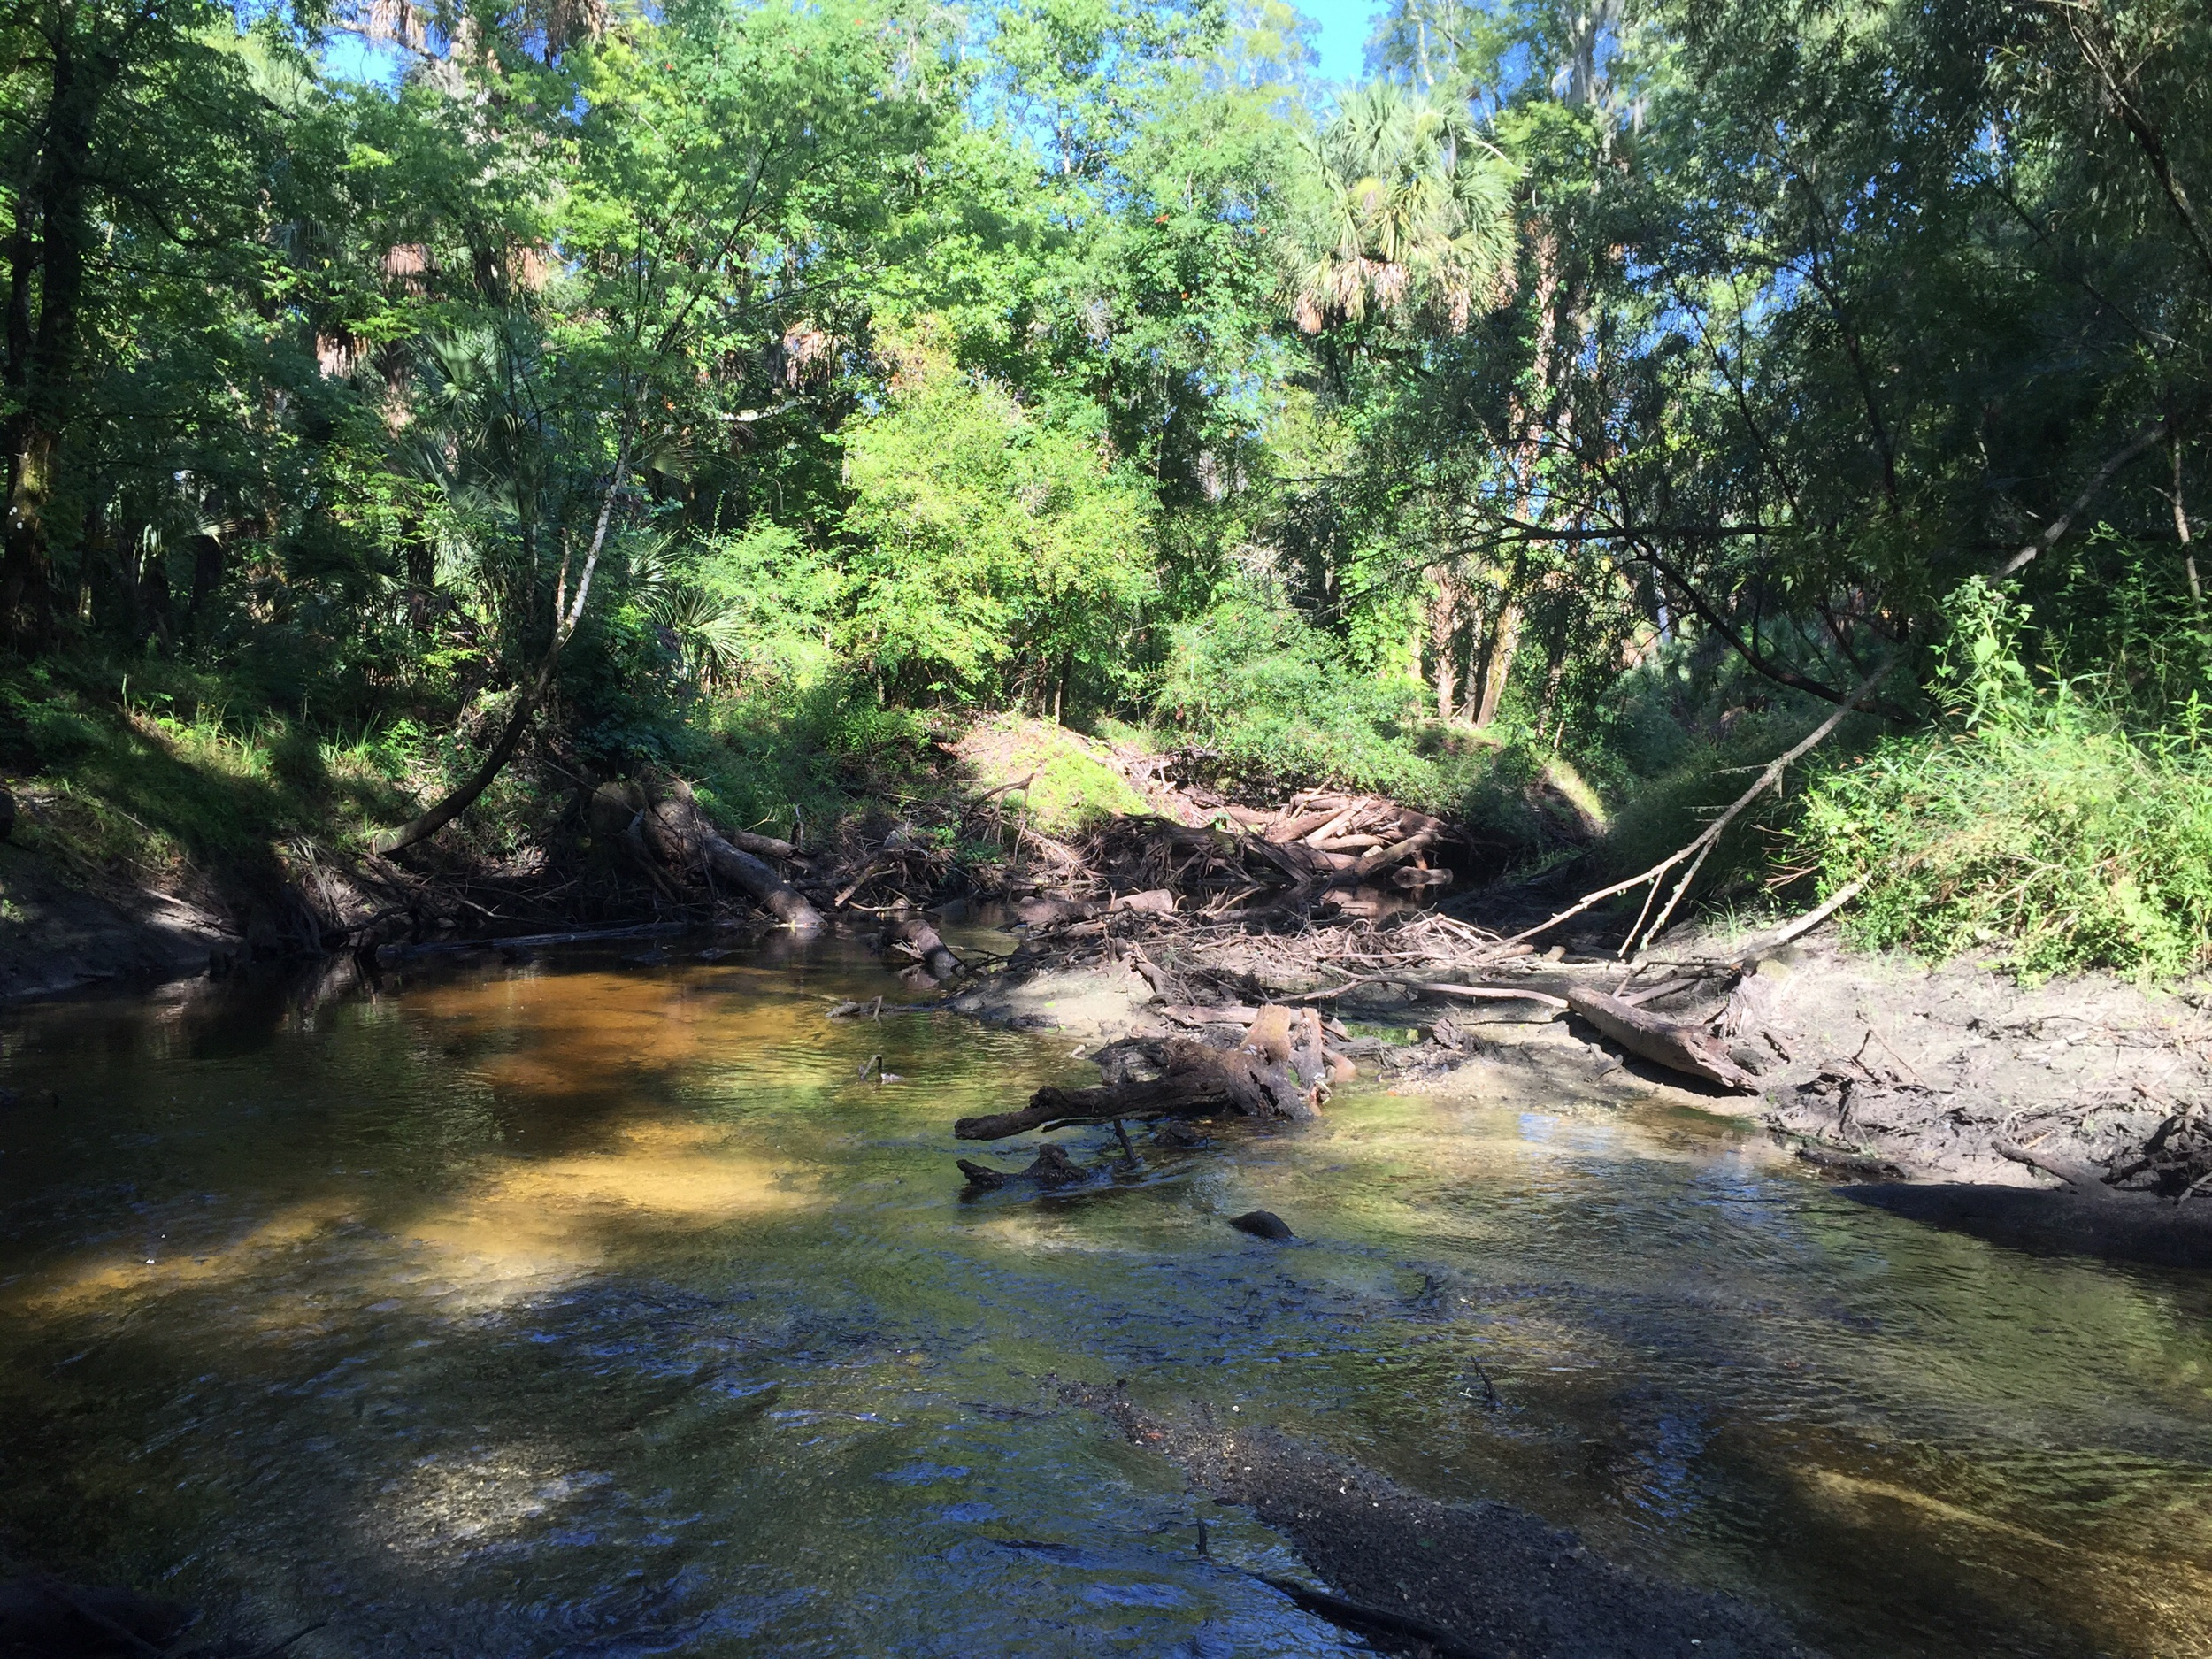 A small stream flows into the Alafia River from last night's rainstorm.